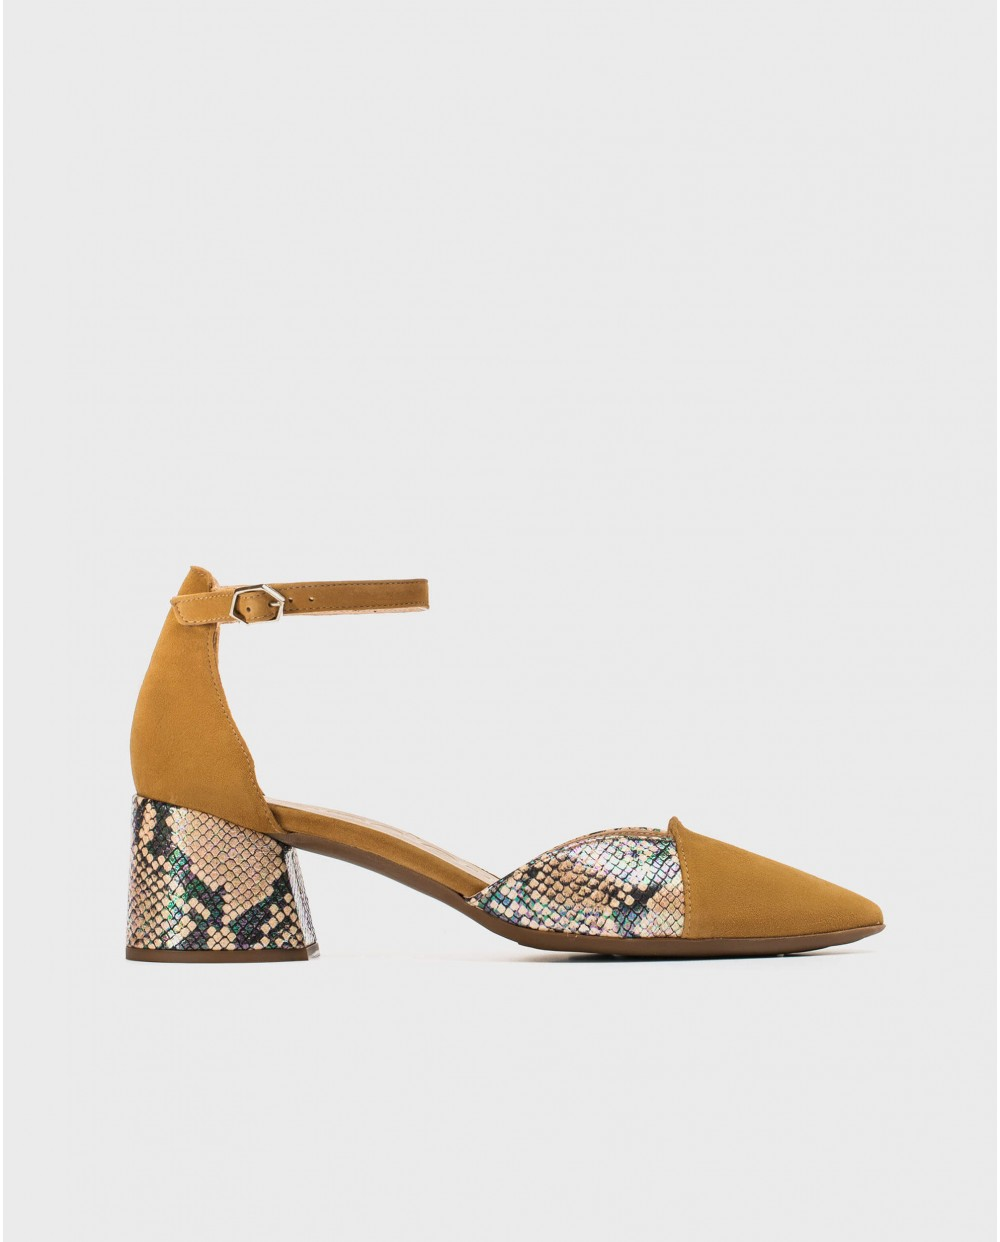 Wonders-Women-High heeled shoe with ankle strap